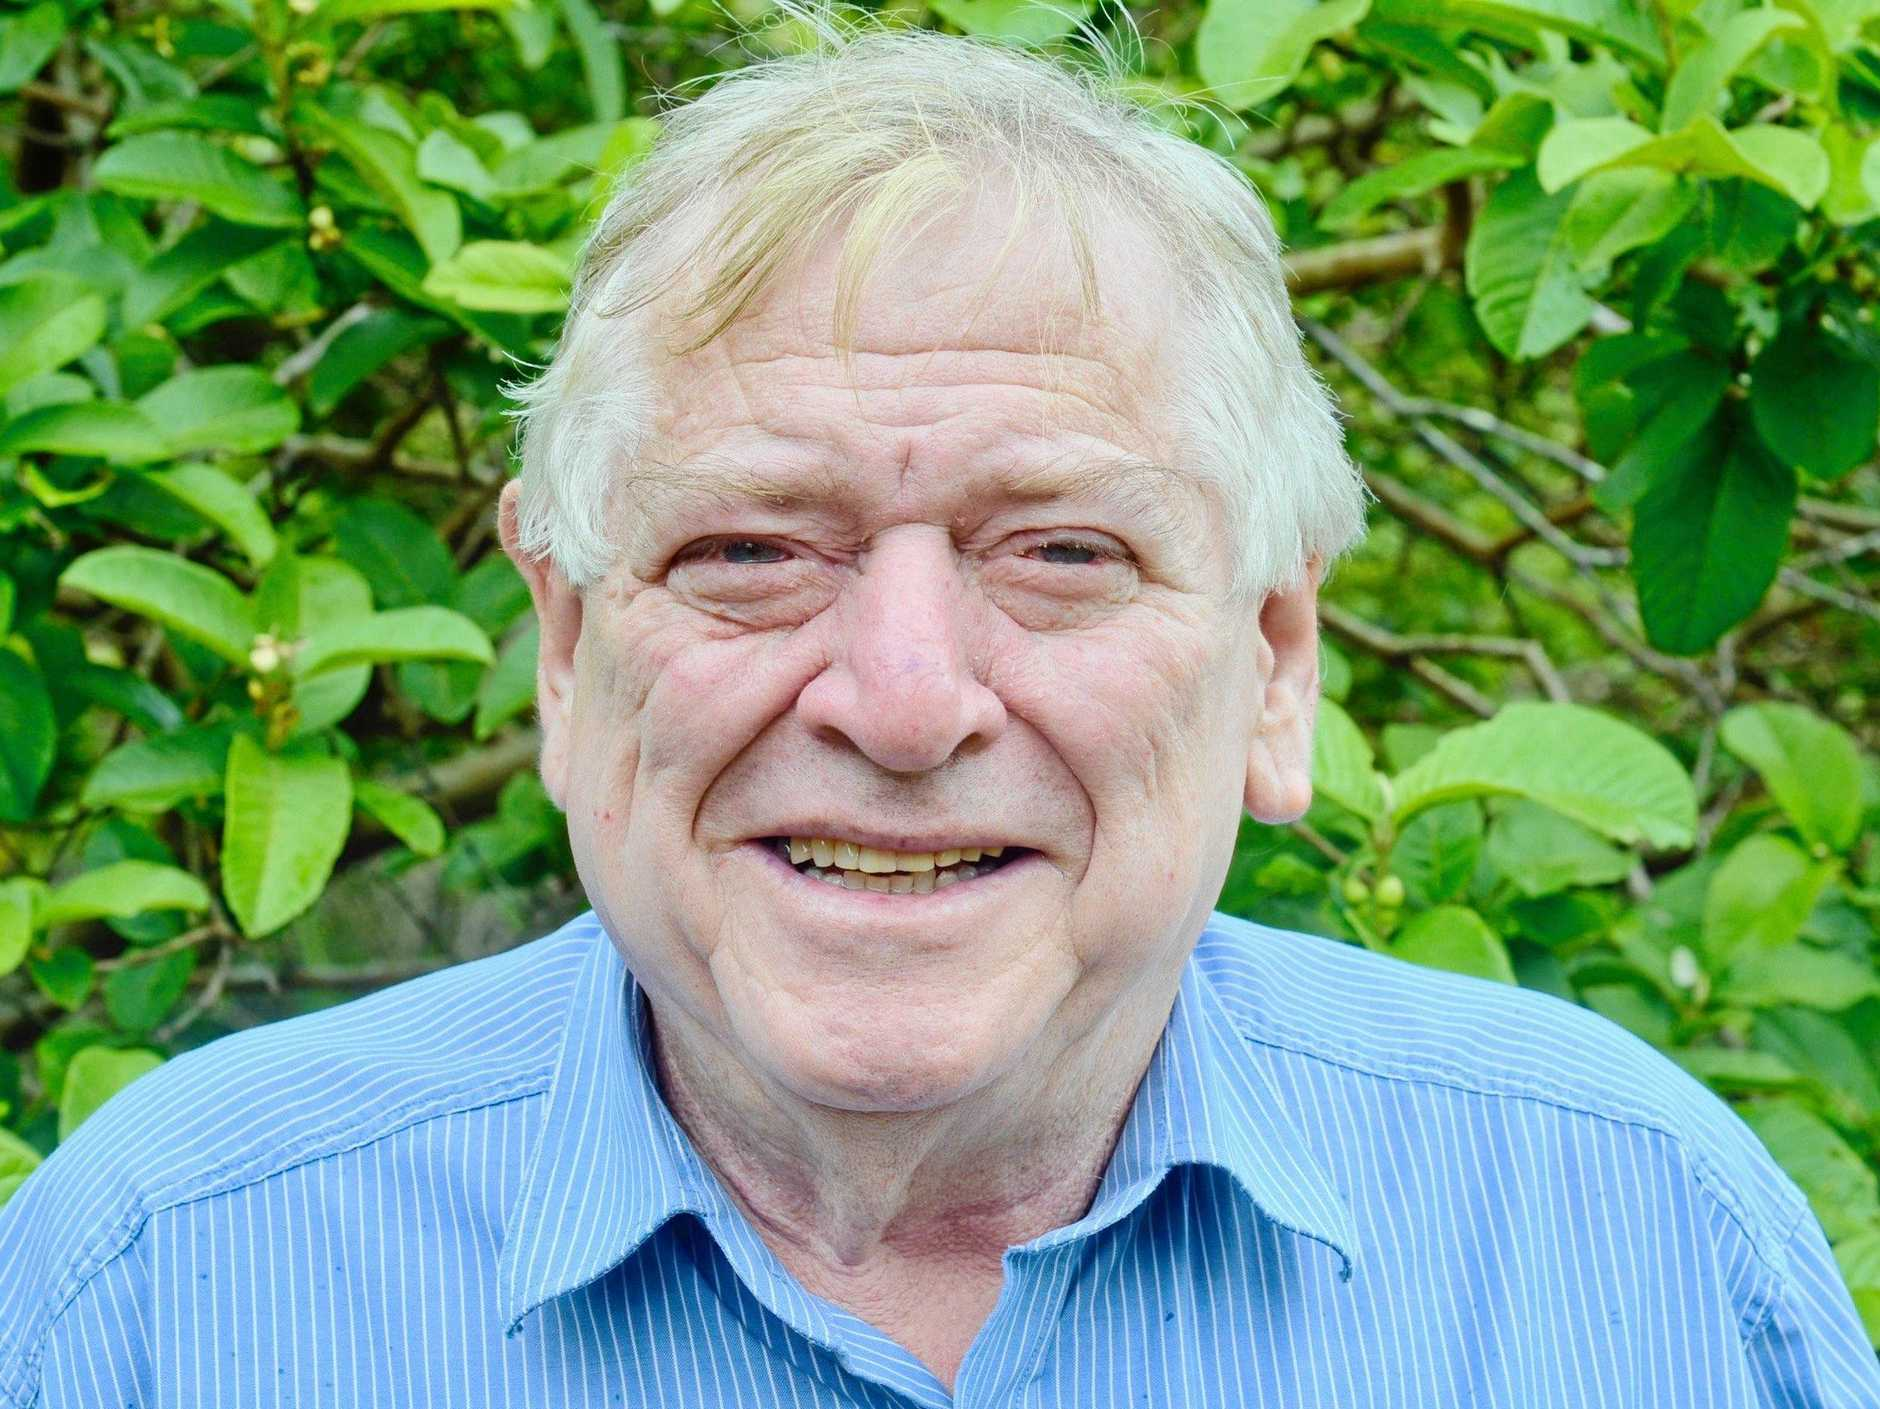 Woodford Folk Festival director Bill Hauritz. Supplied by Woodford Folk Festival.